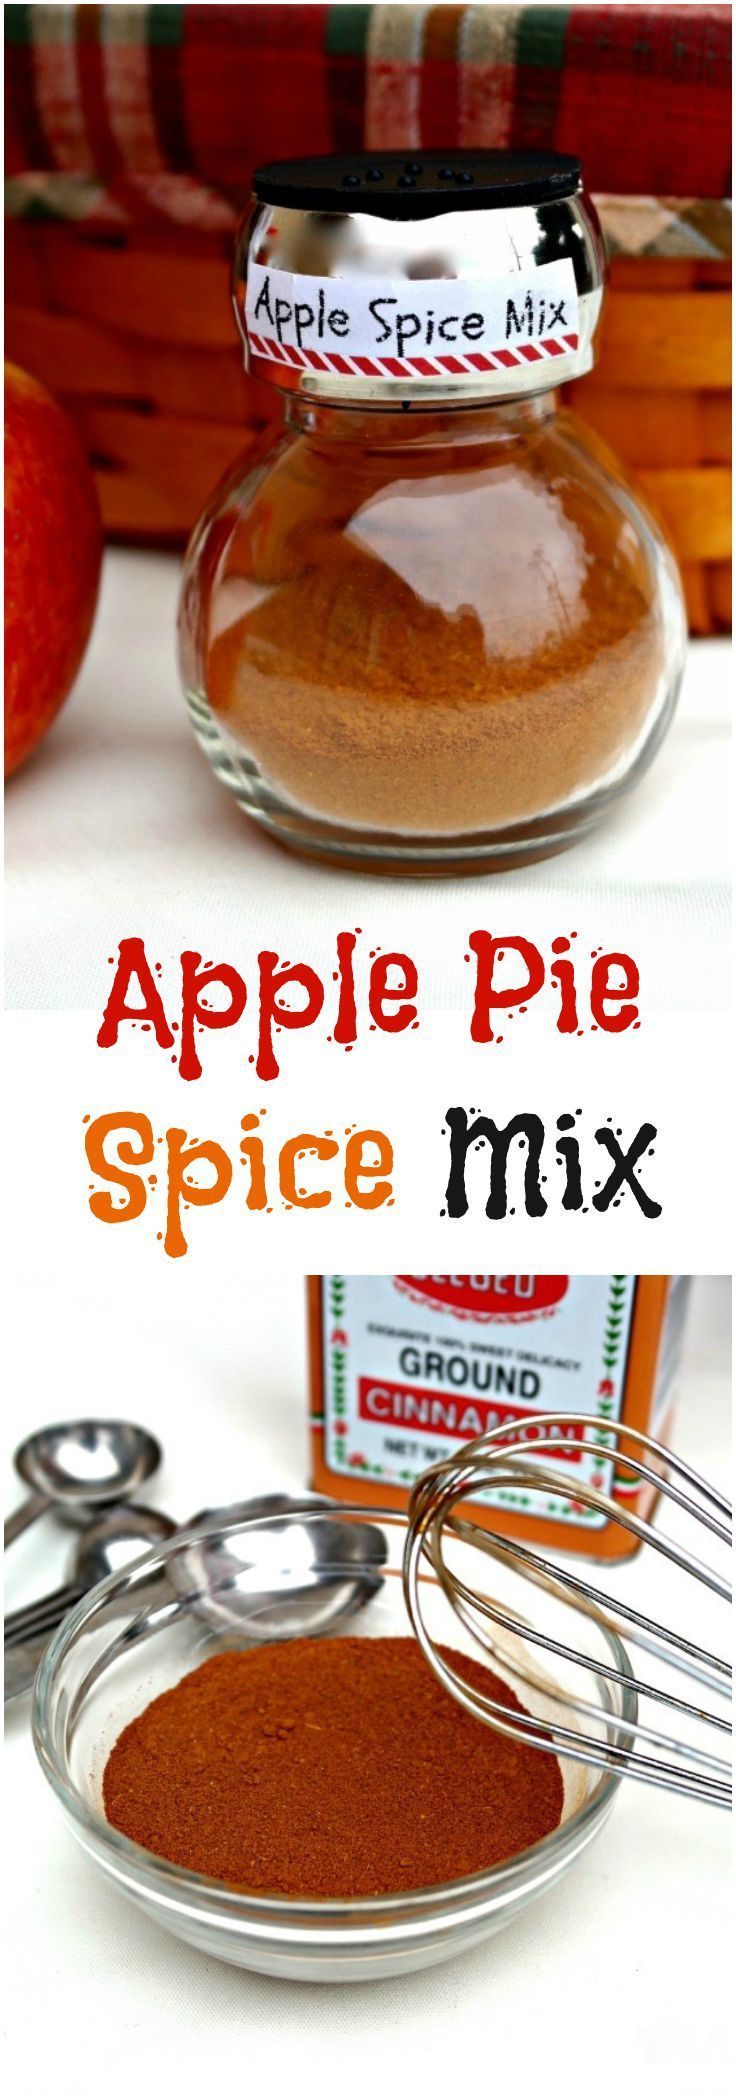 Apple Pie Spice Mix | Recipe | Homemade, The o'jays and ...